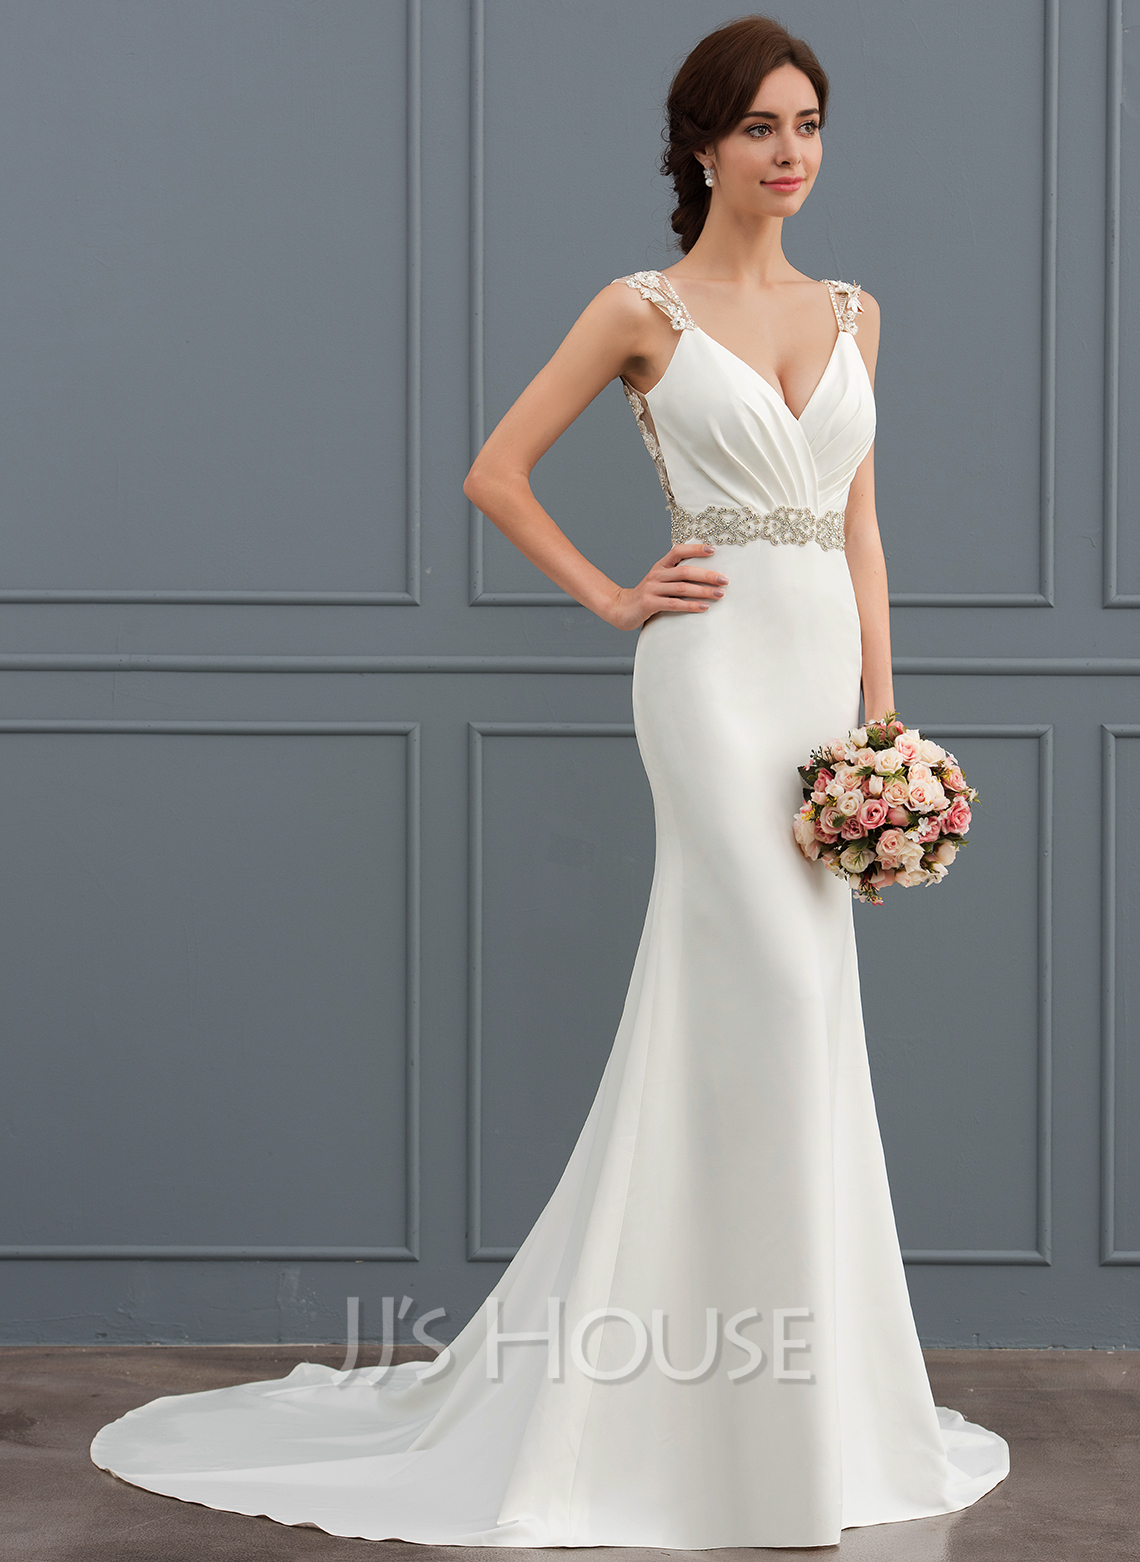 465feb76f90a Trumpet/Mermaid V-neck Court Train Stretch Crepe Wedding Dress With Lace  Beading. Loading zoom